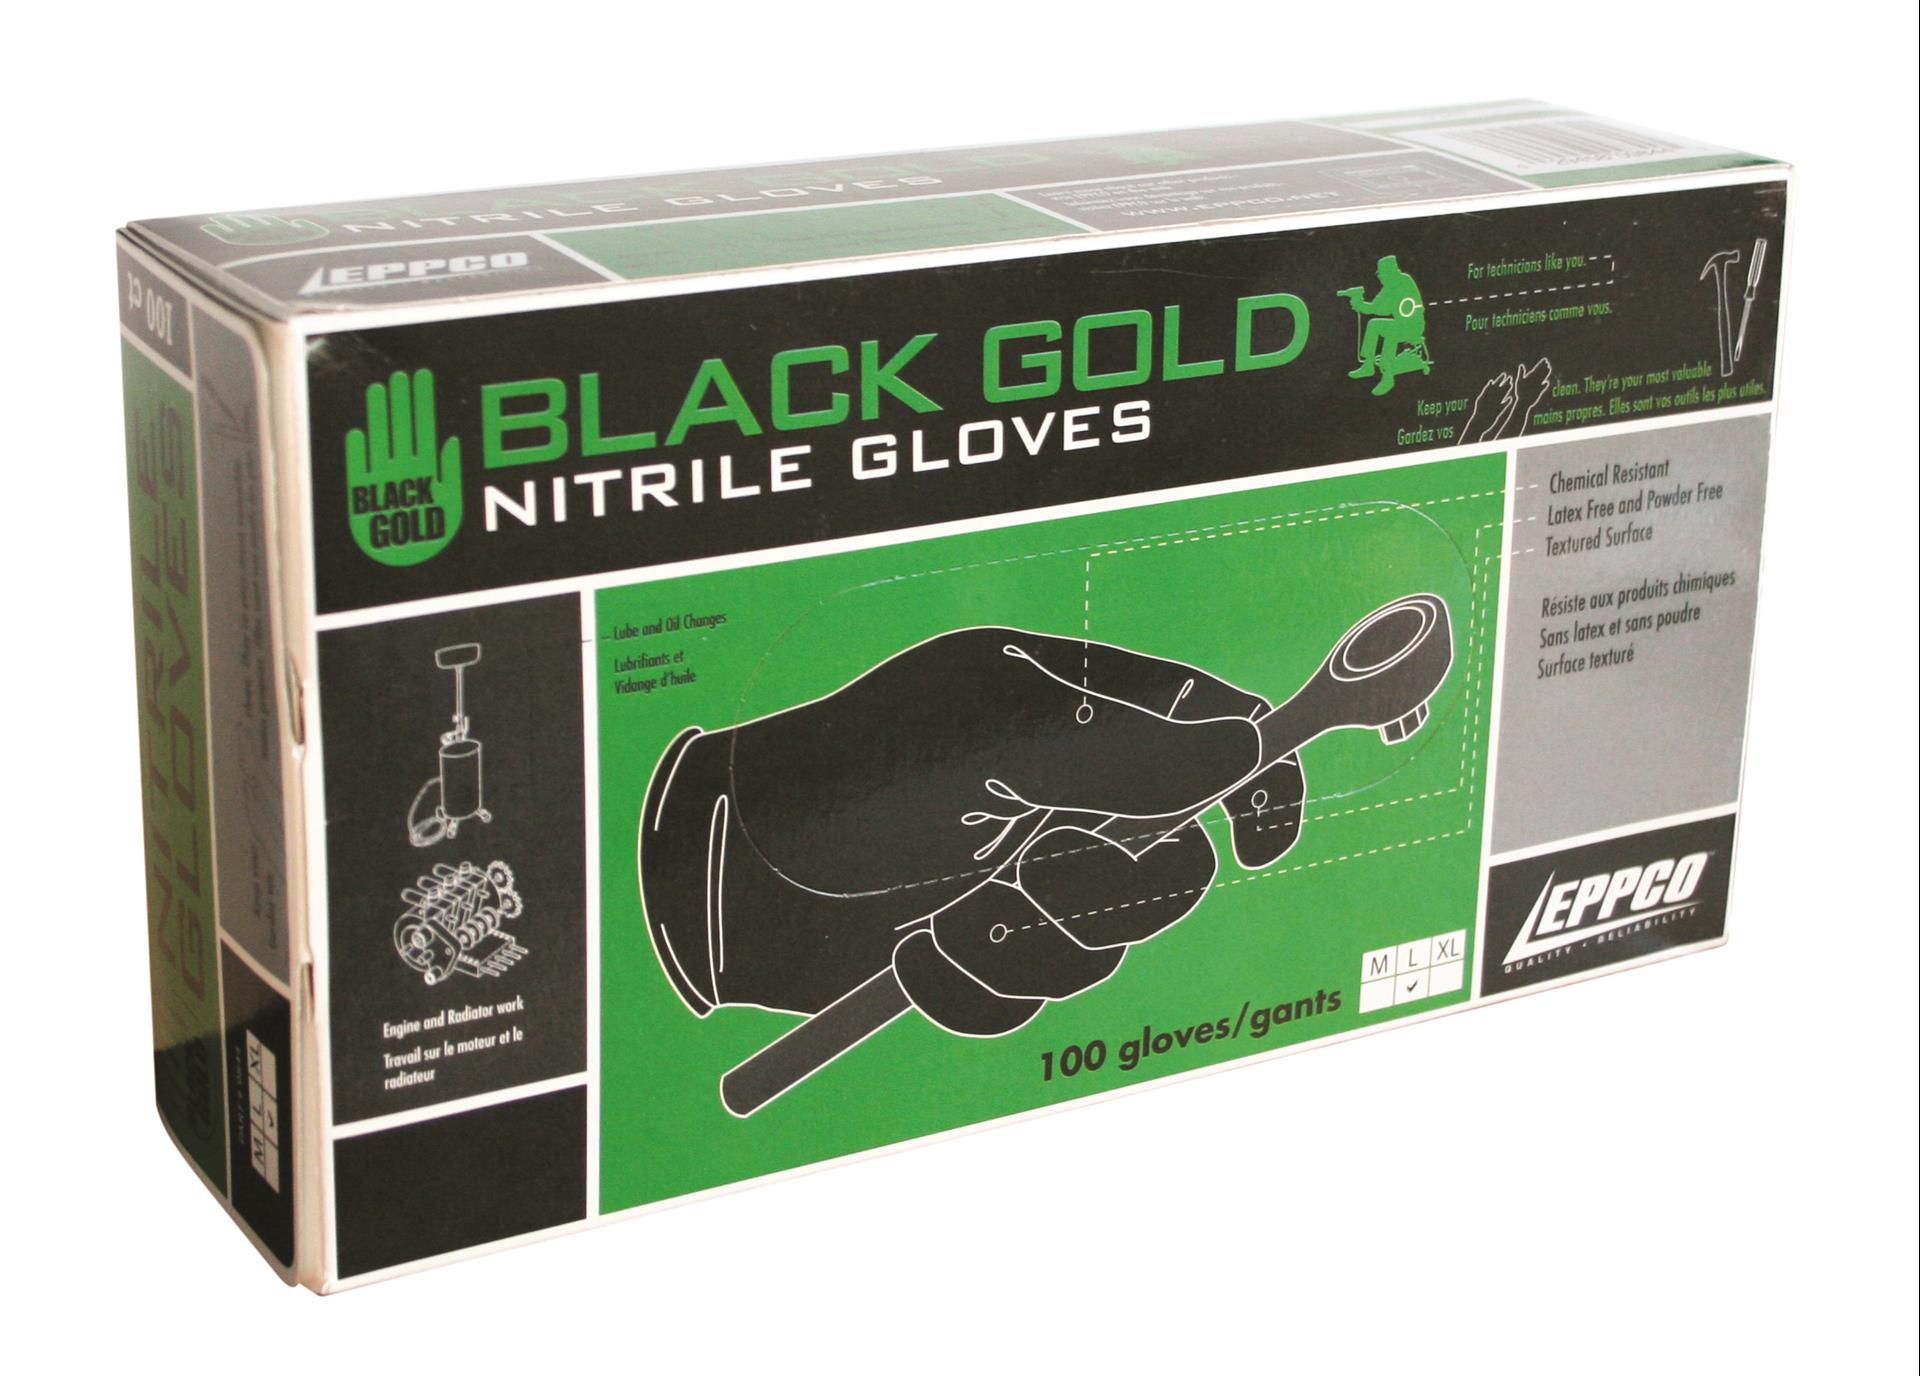 Gloves Nitrile Black Gold 100 per Box Eppco